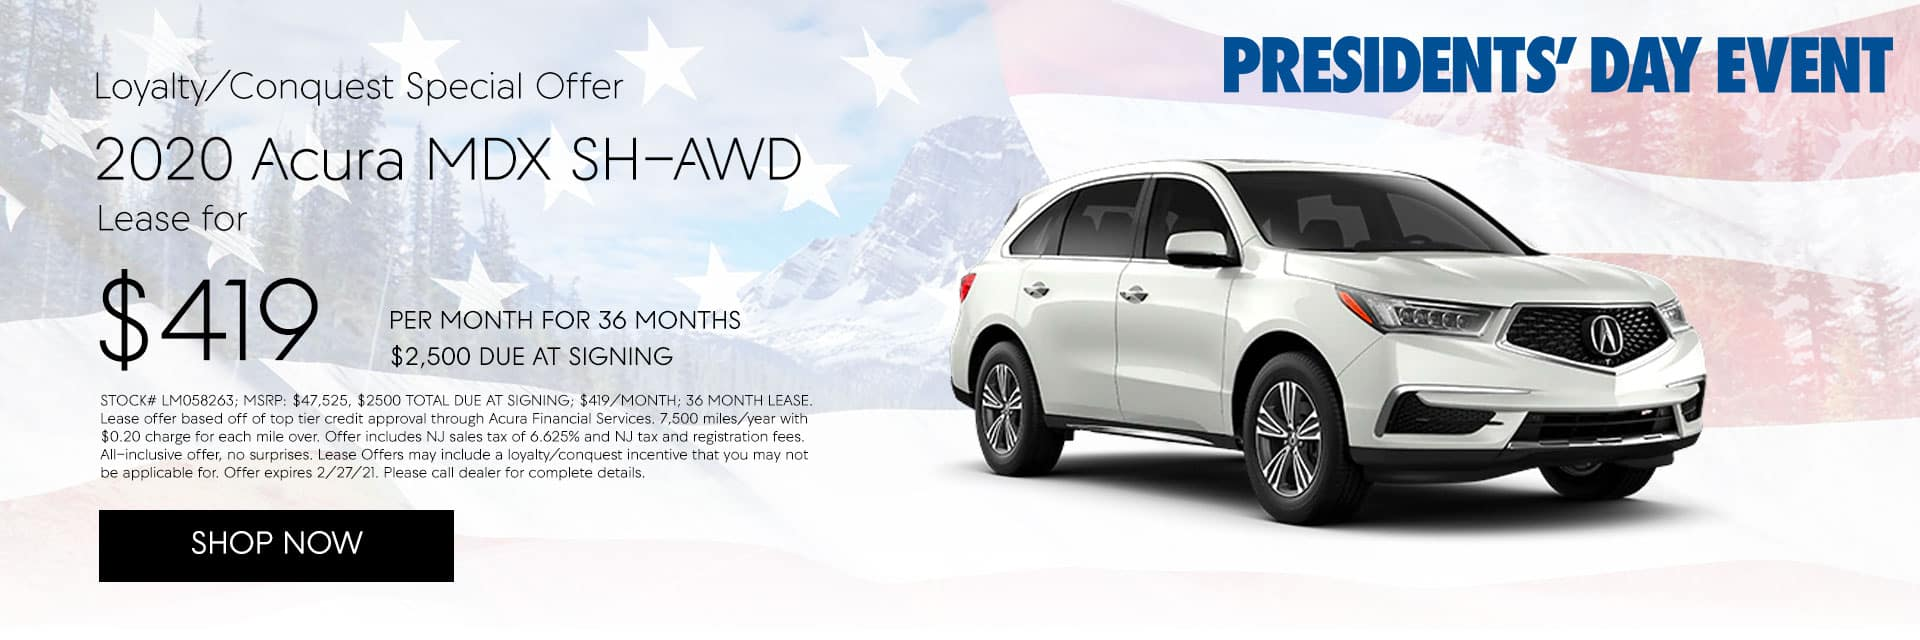 2020 ACURA MDX SH-AWD LOYALTY/CONQUEST OFFER Lease for $419/mo for 36 months with $2,500 due at signing*